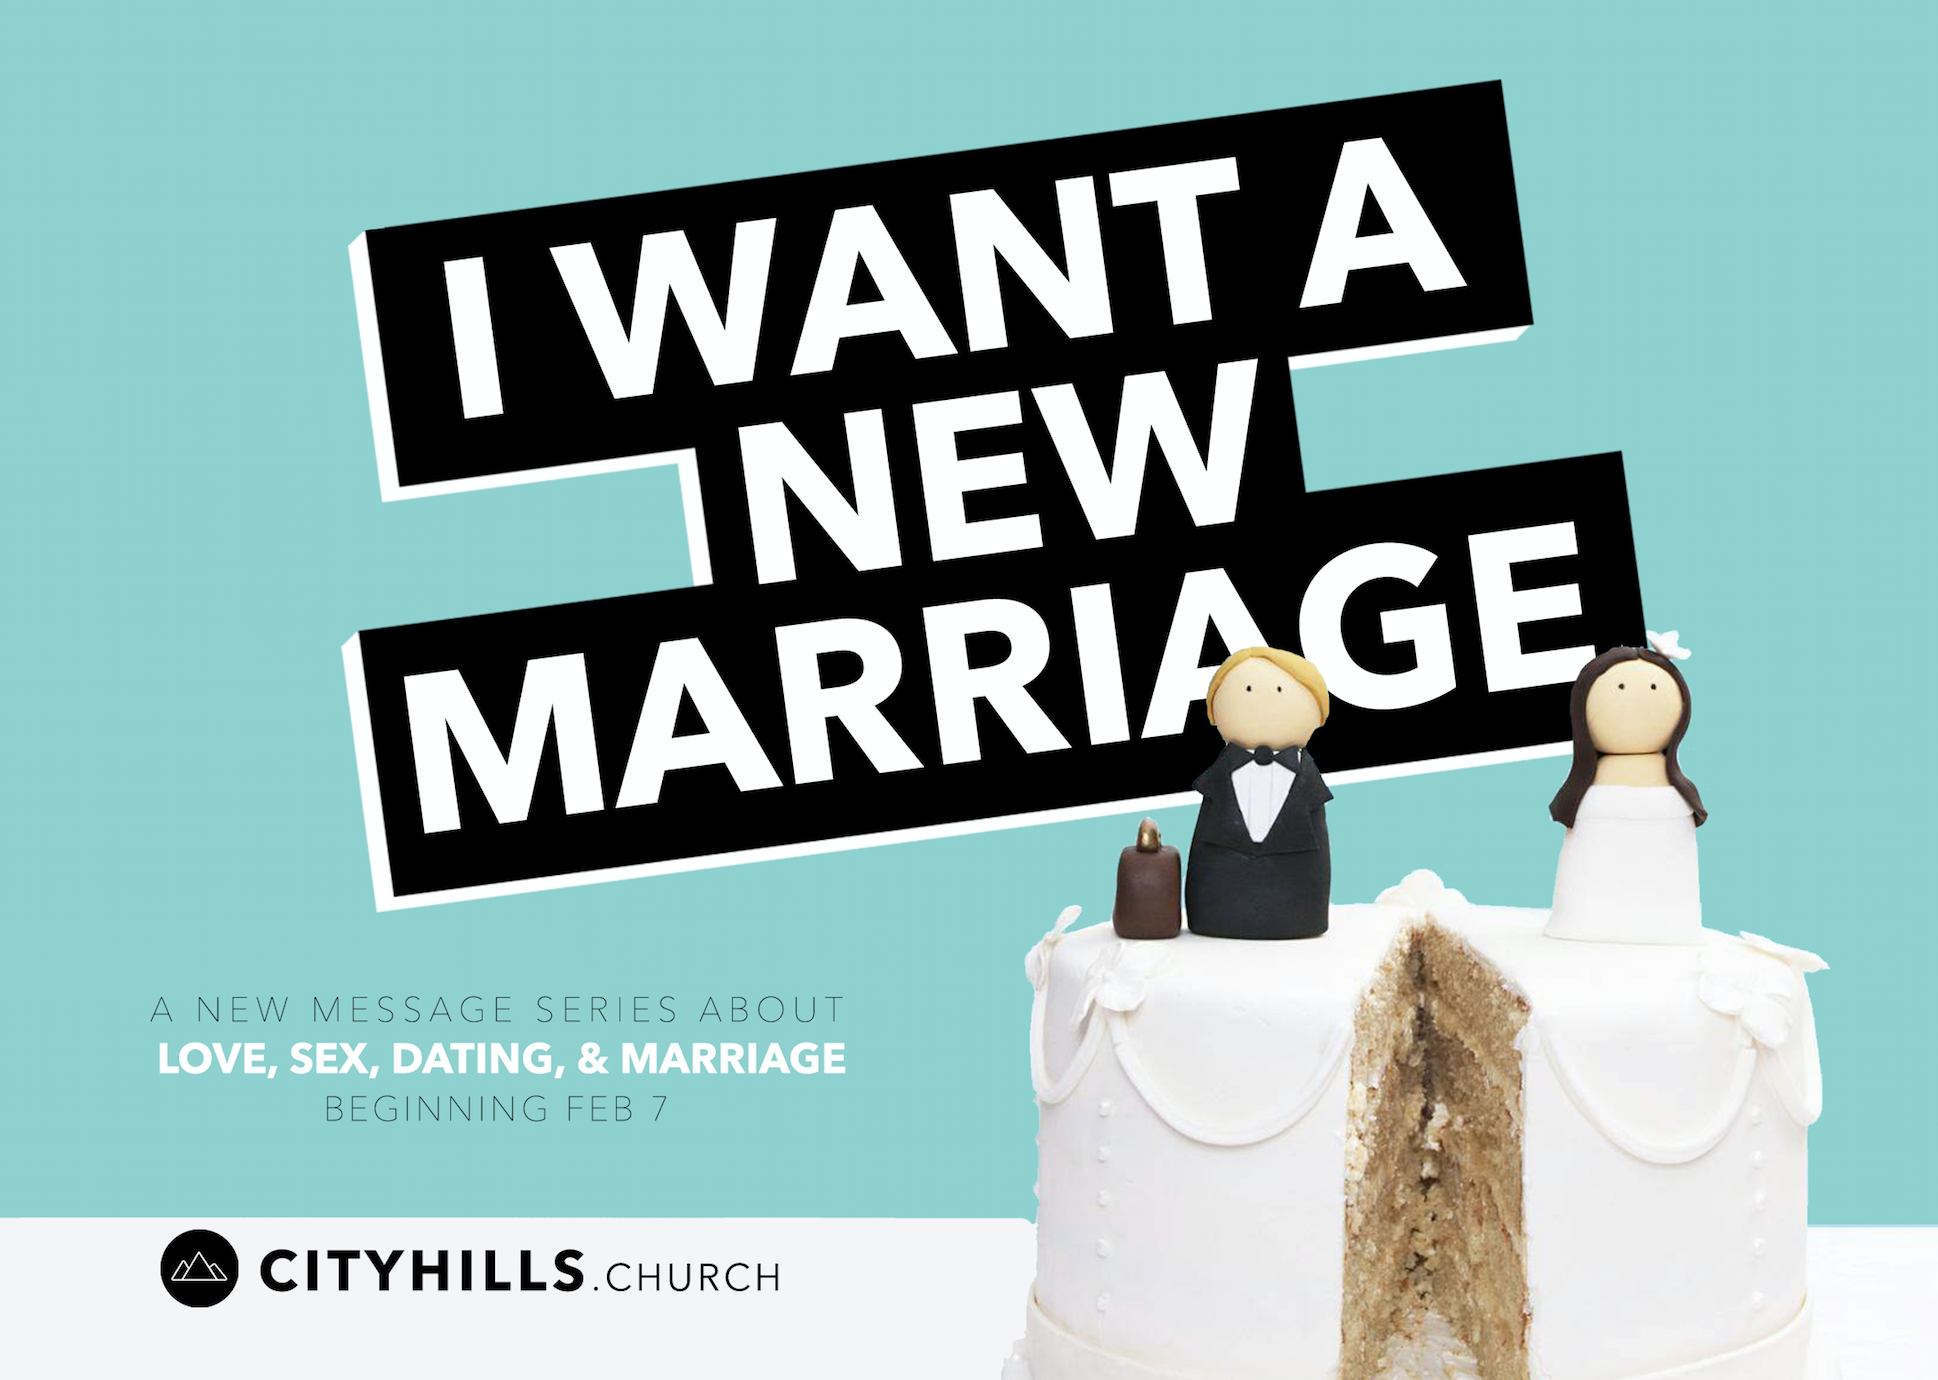 I want a new marriage series